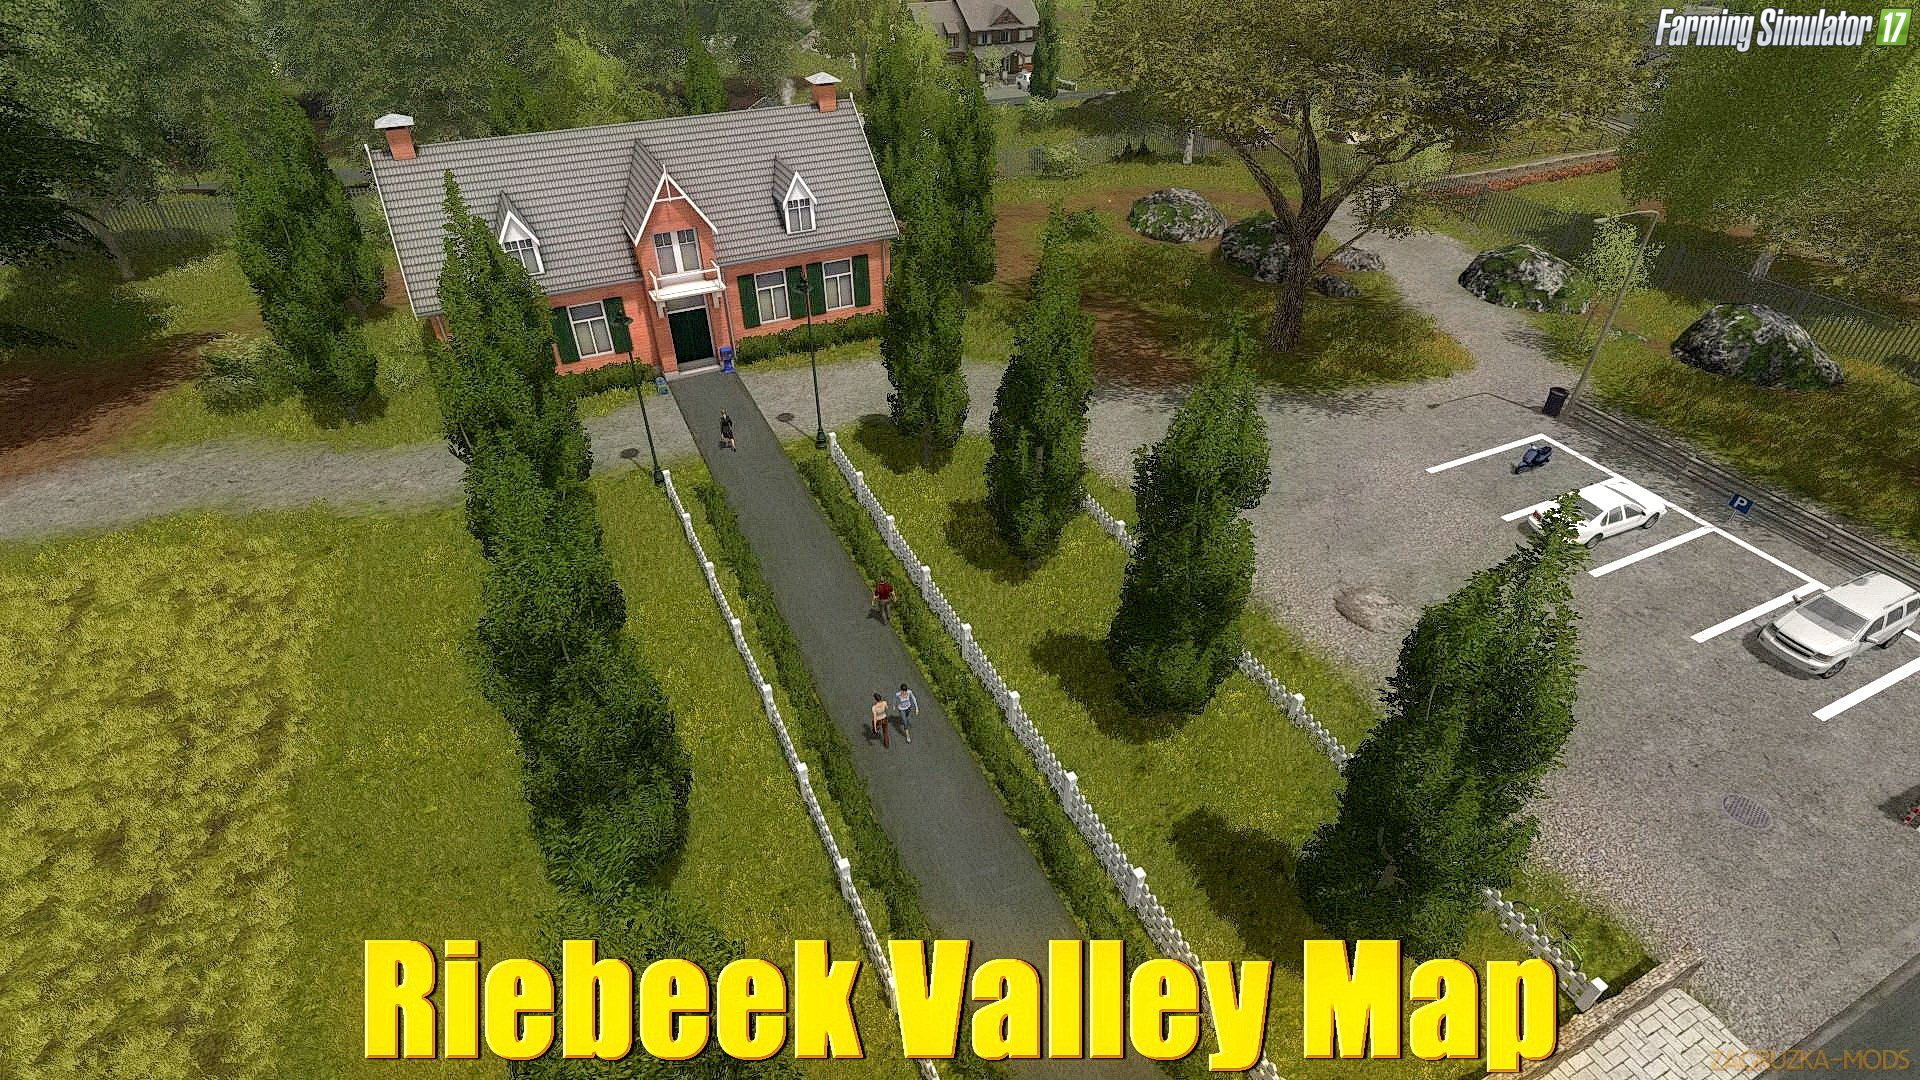 Riebeek Valley Map v1.0 for FS 17